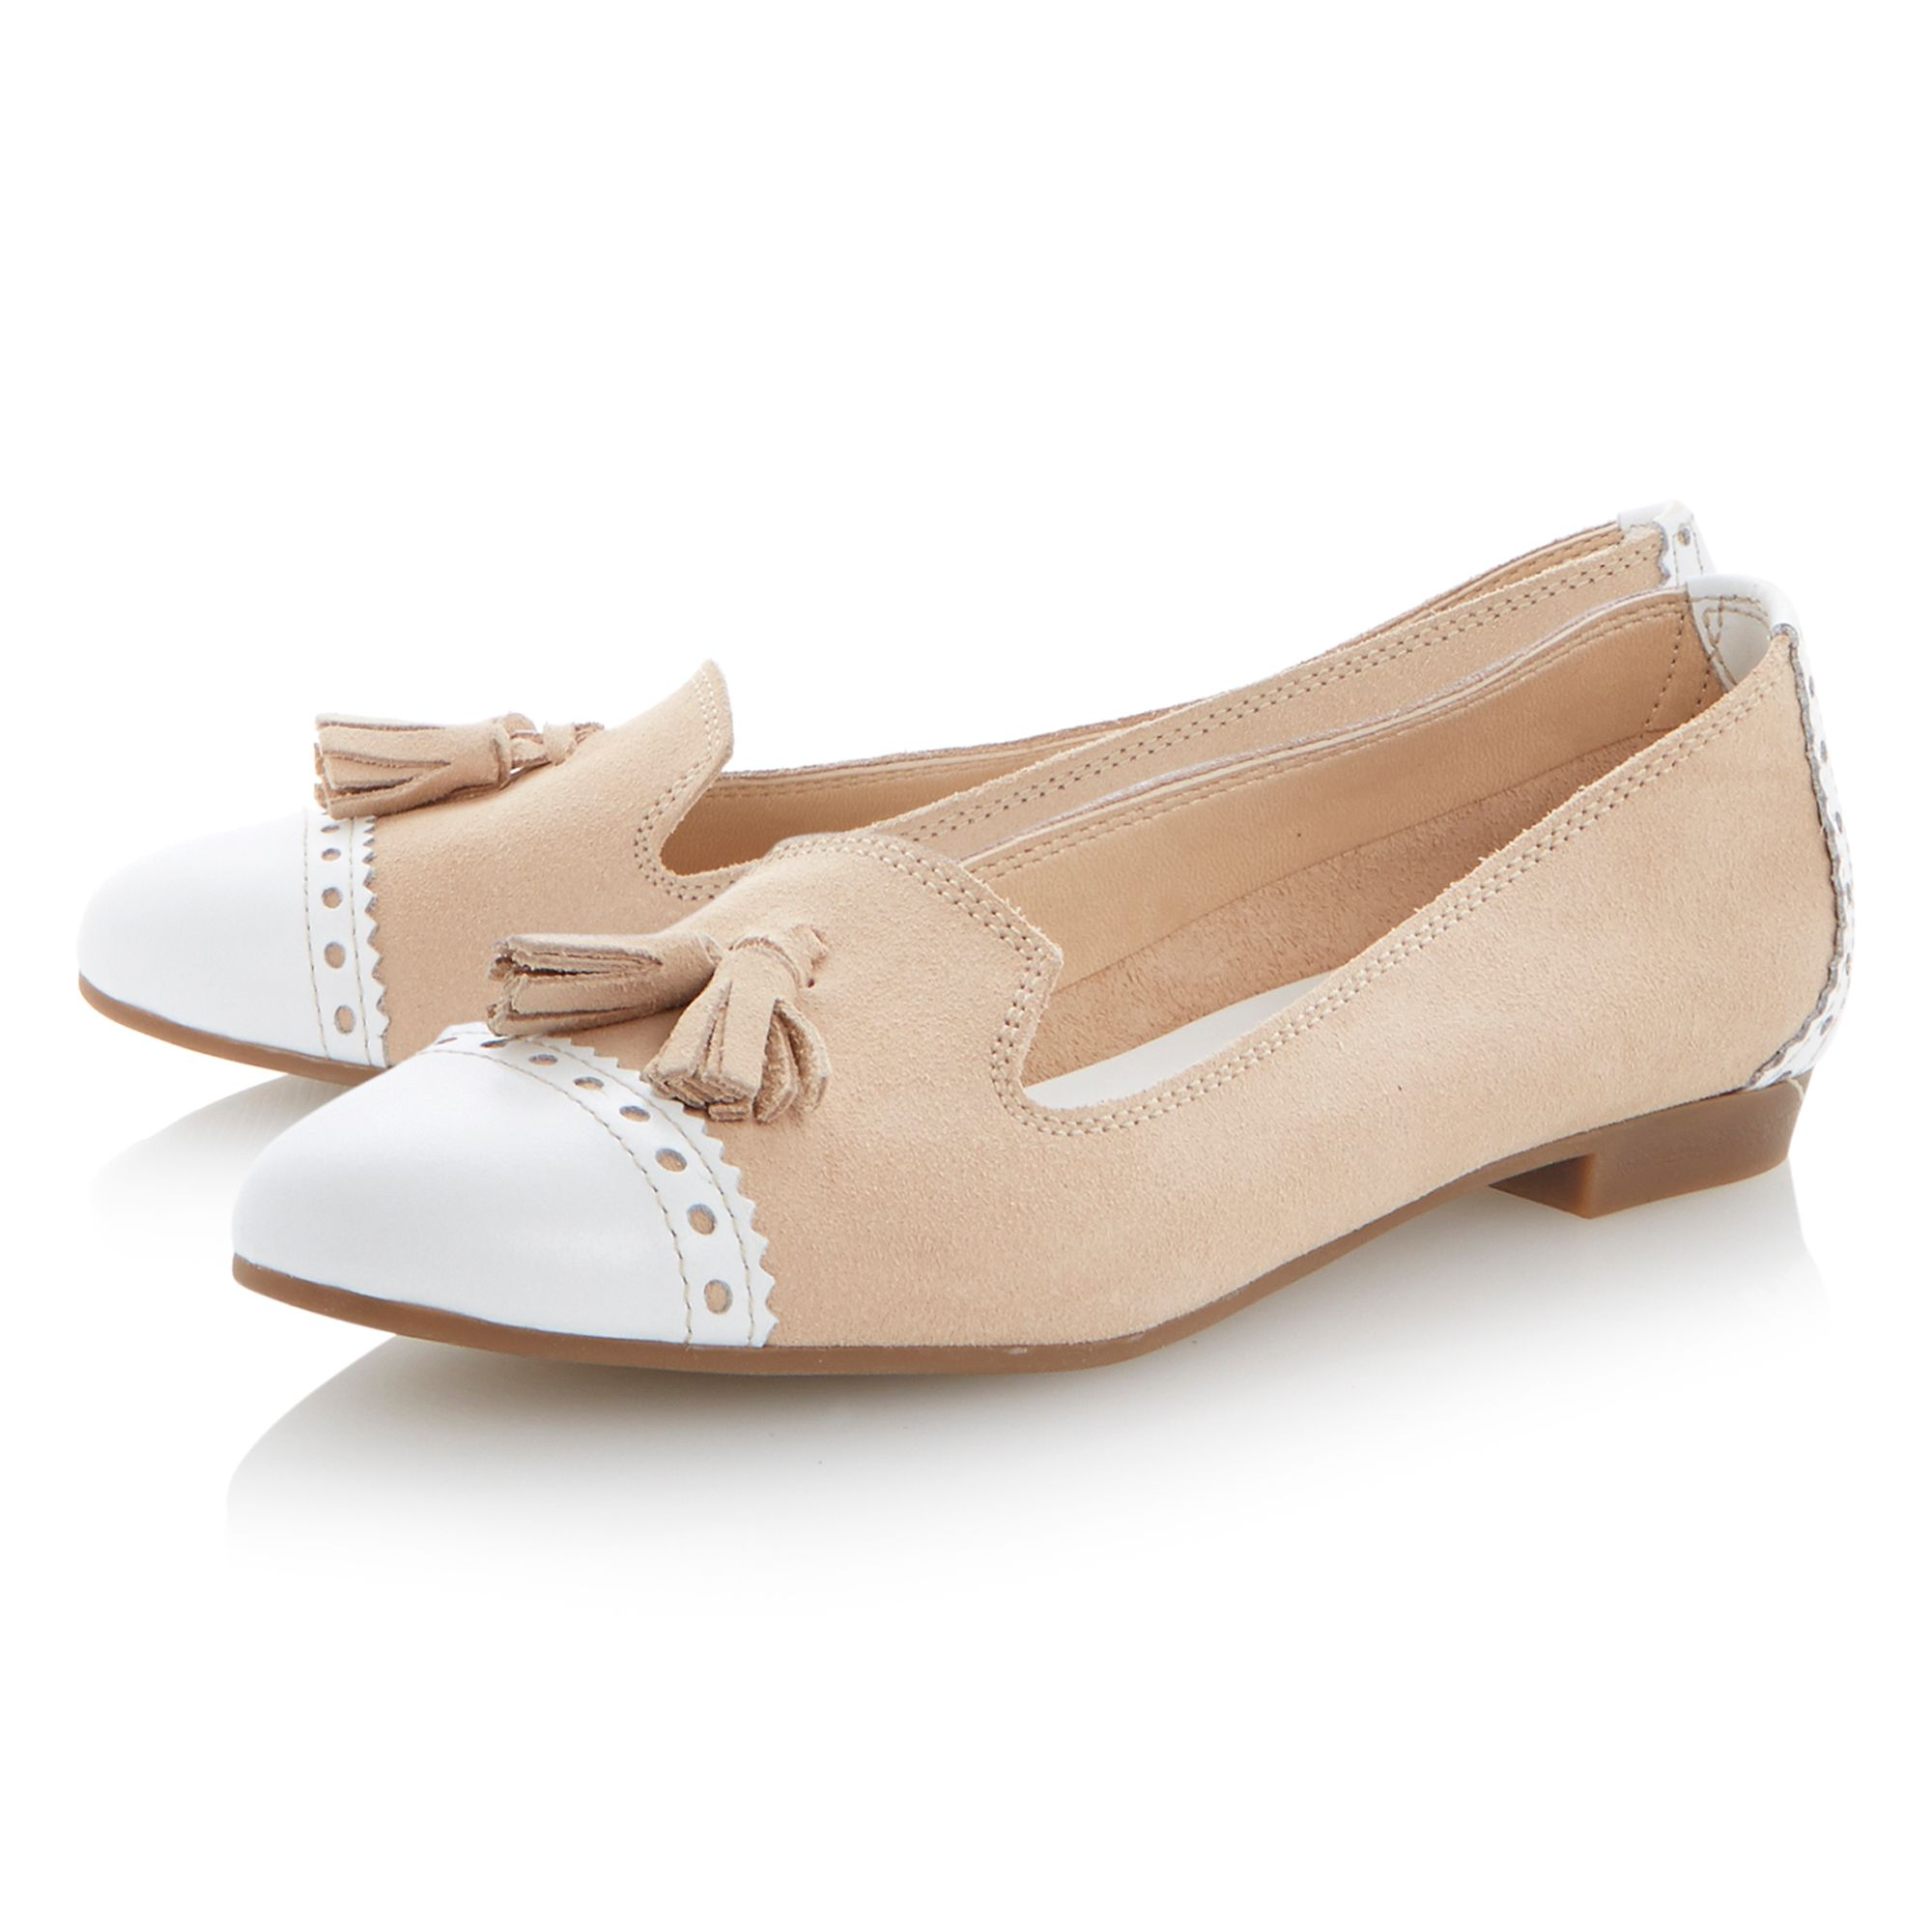 Lucille suede almond toe loafer shoes